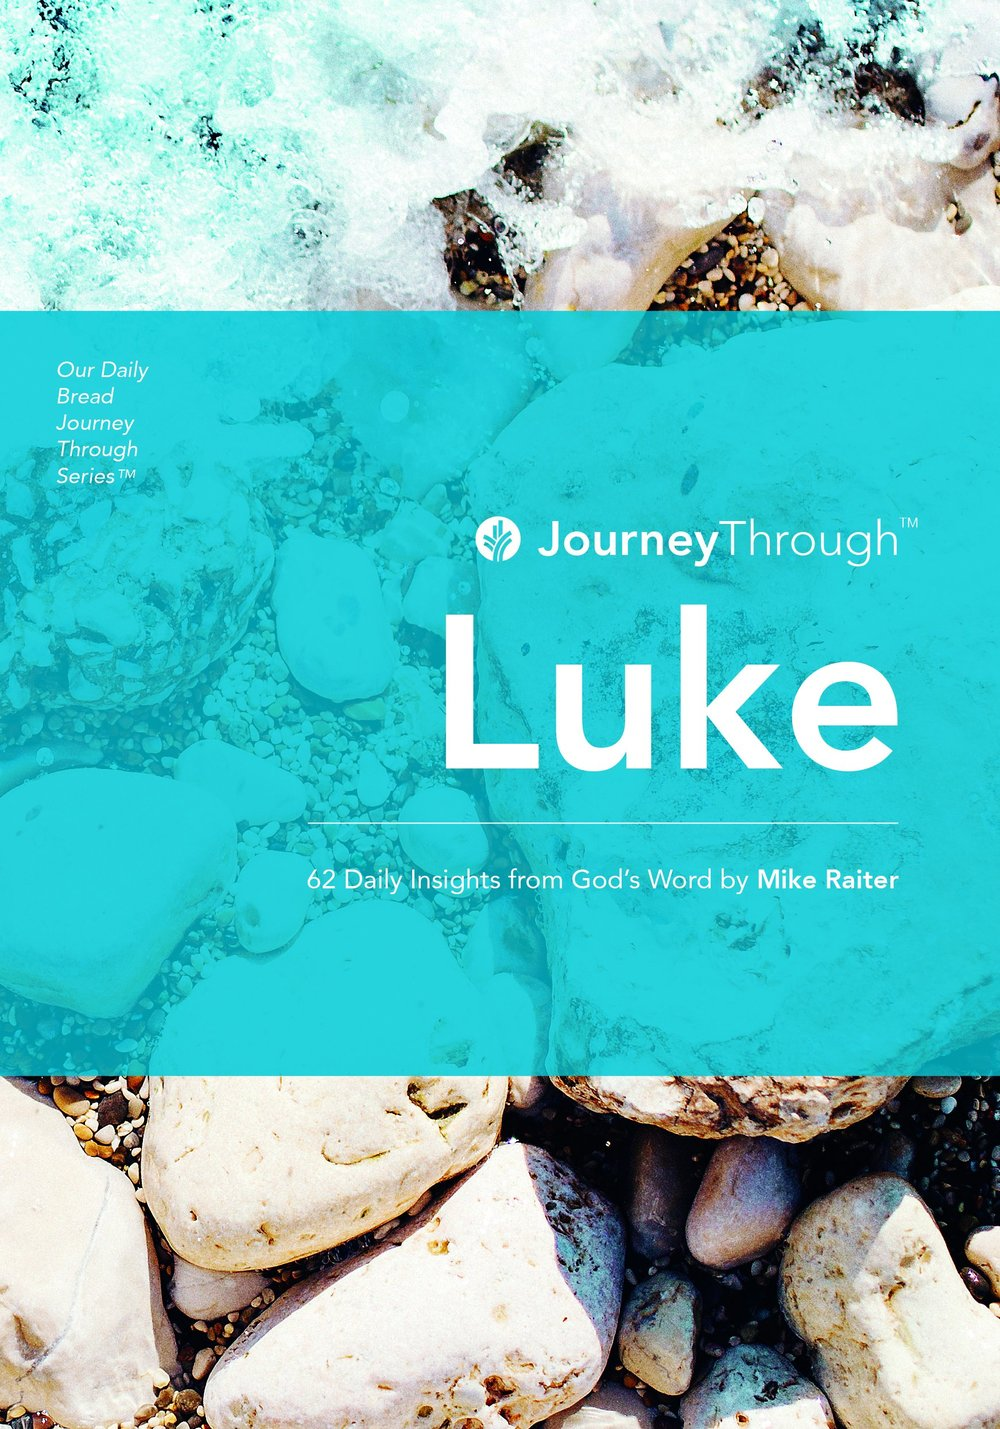 Our Journey Through Series by Daily Bread Ministries. - Find Mike Raiter's devotions here. Our Journey Through series is a book-by-book devotional that is ideal for your quiet time and personal reflection.Learn to spend time in God's Word in your daily walk with God.